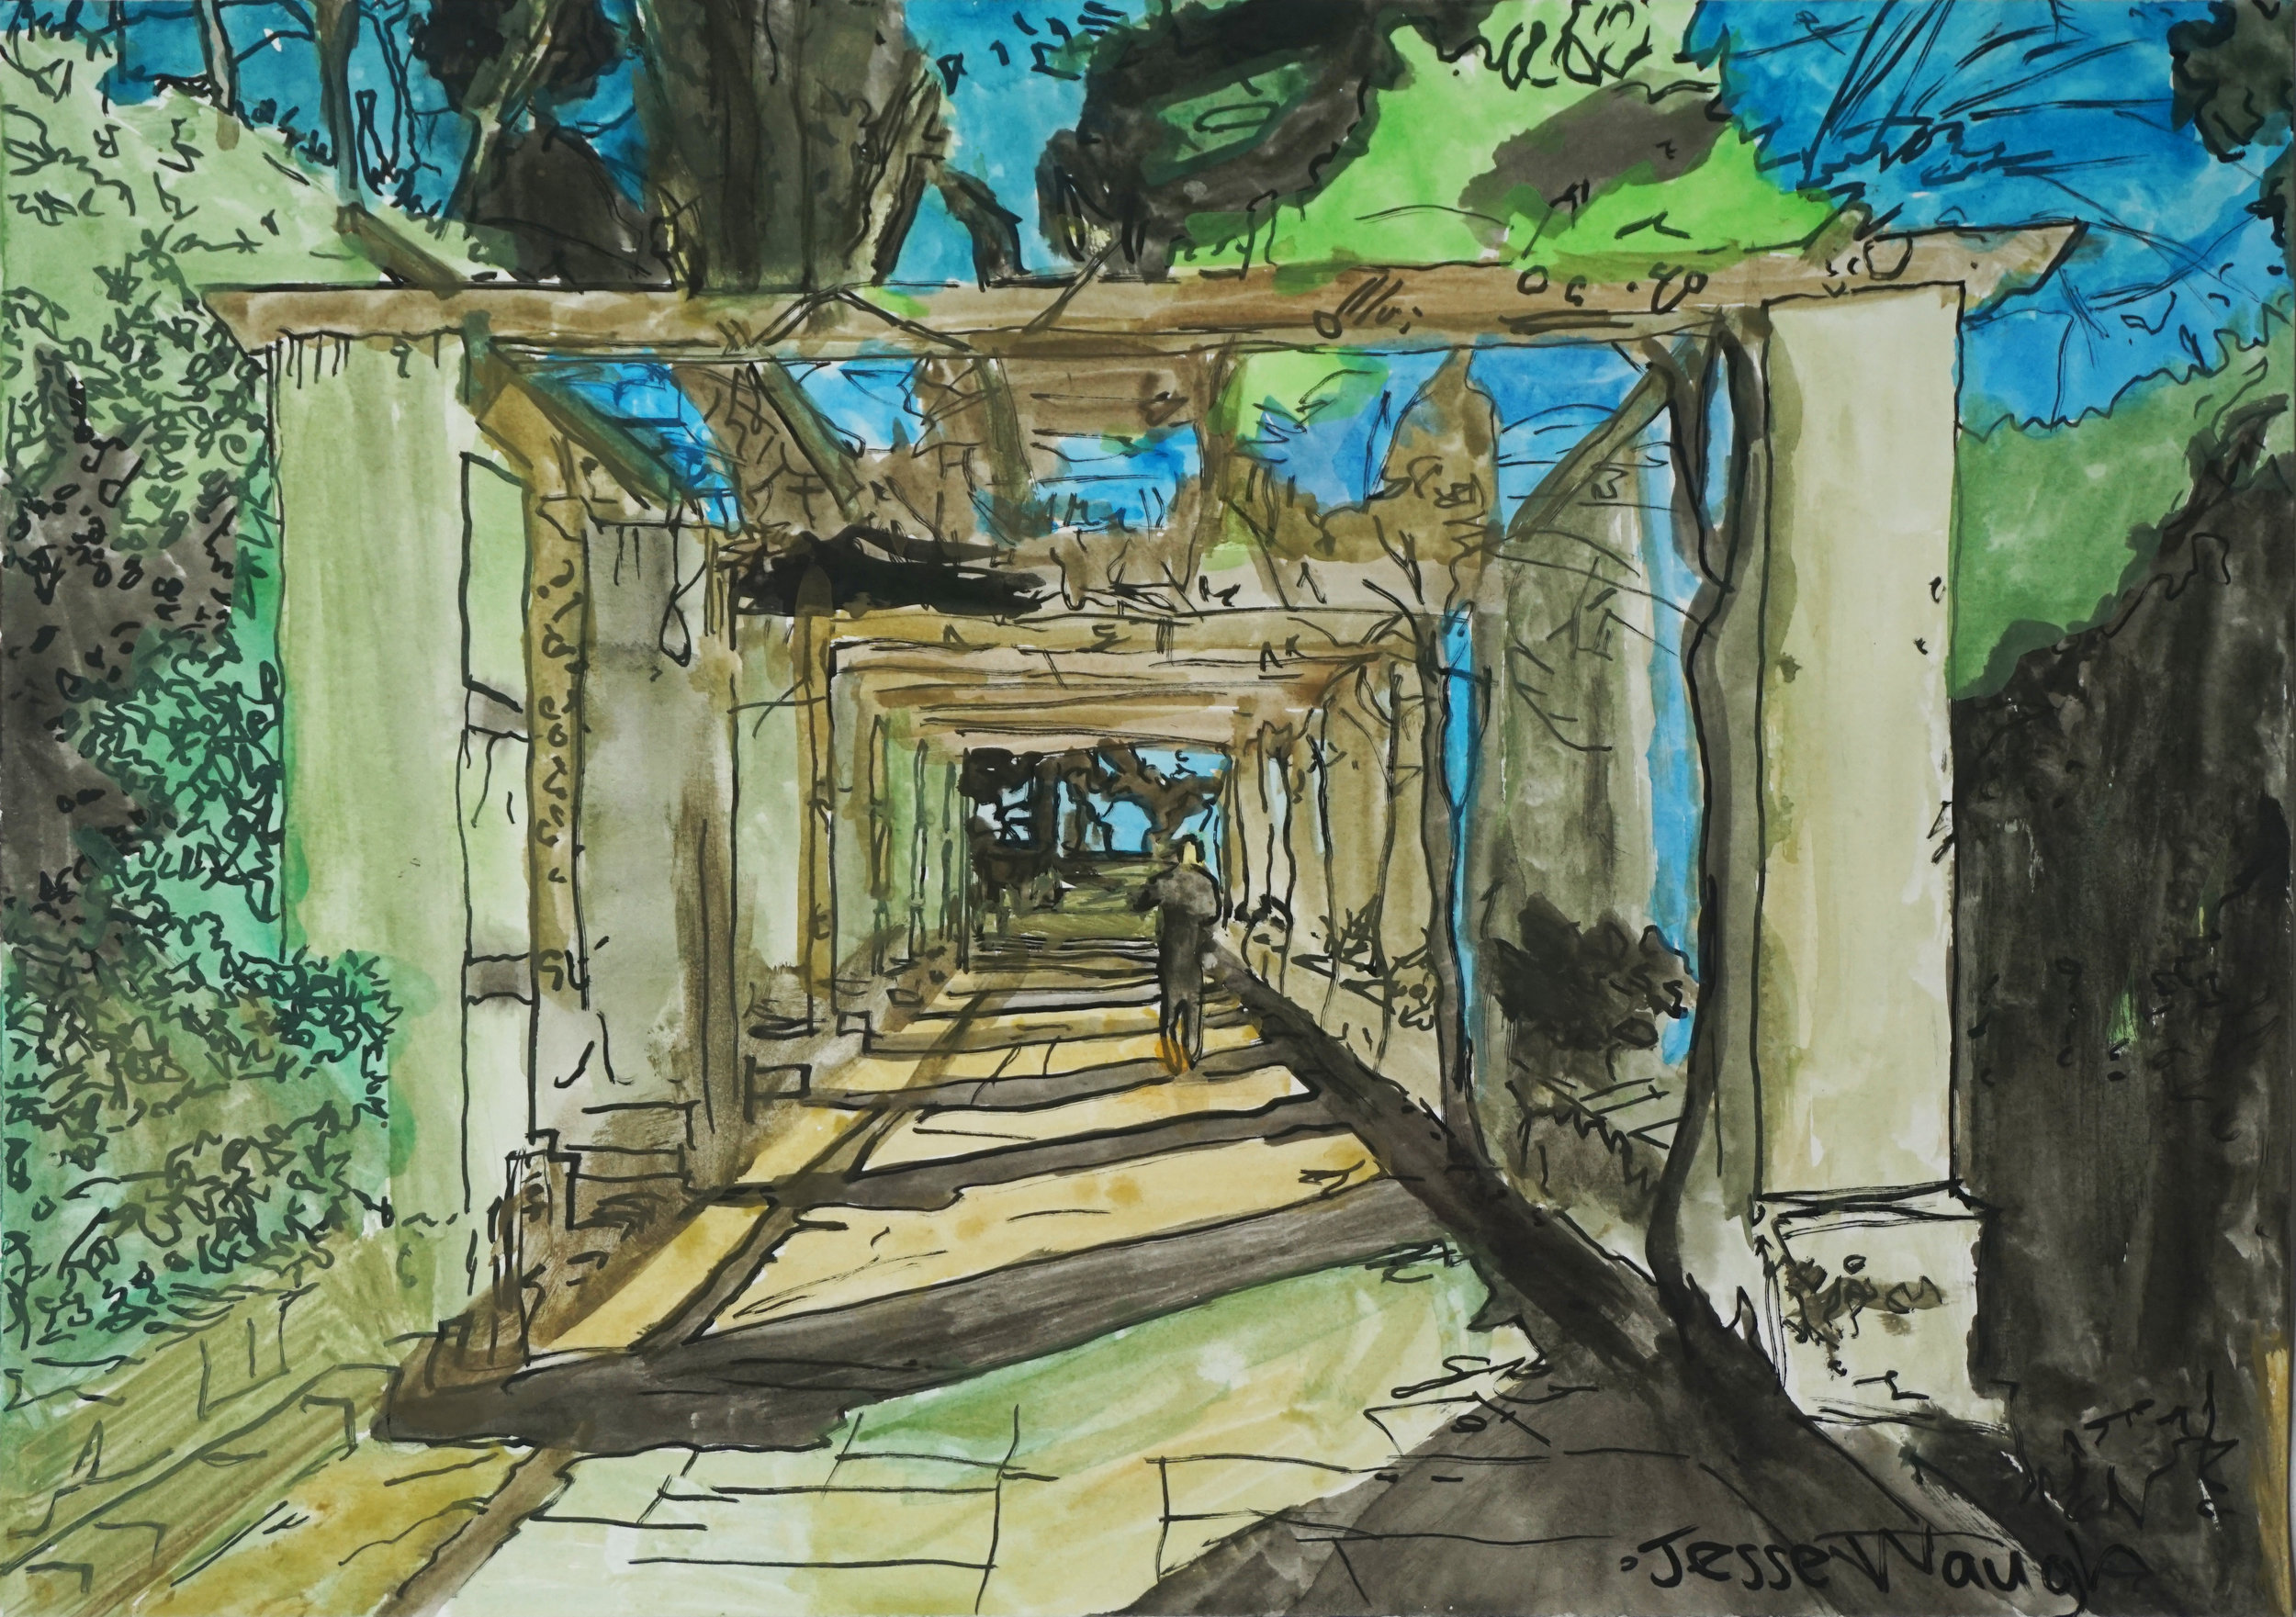 JESSE WAUGH   KEITH AT MONTJUIC   2018 WATERCOLOR 297 X 420 MM (A3)